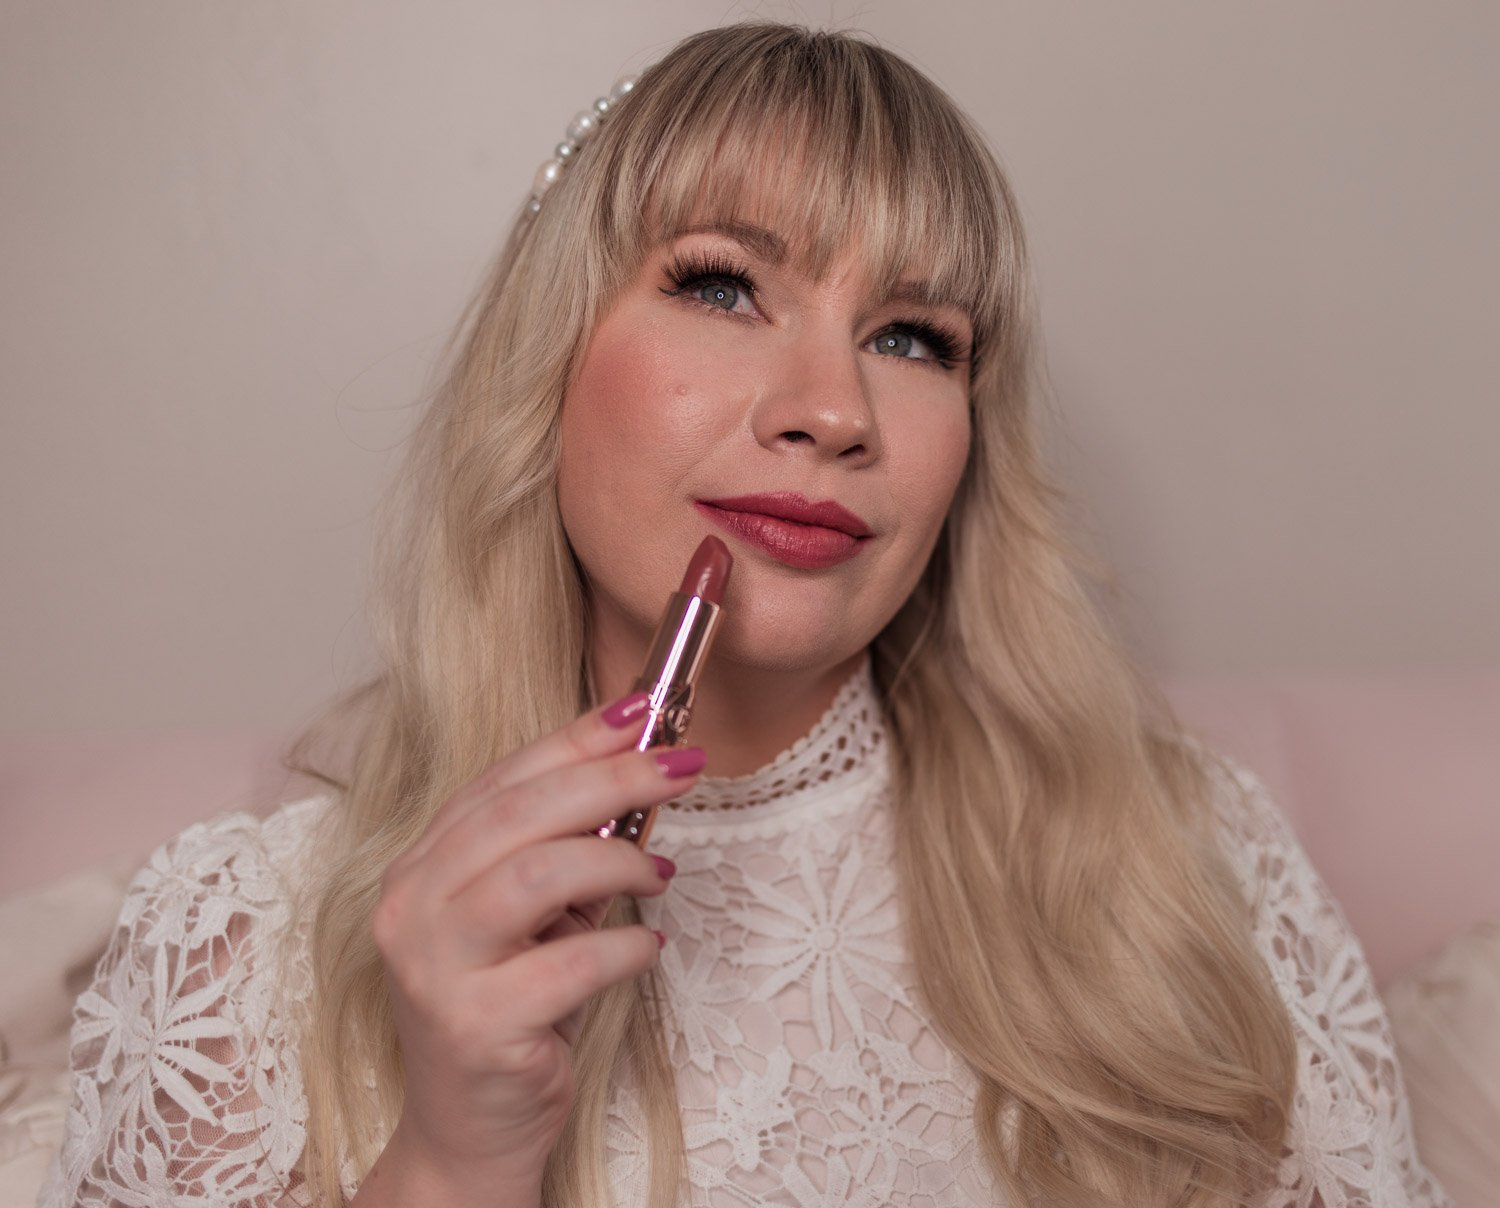 Feminine fashion and beauty blogger Elizabeth Hugen of Lizzie in Lace shares the Charlotte Tilbury Look of Love Collection Review and lipstick swatches including her Nude Romance lipstick review - the perfect wedding lipstick!